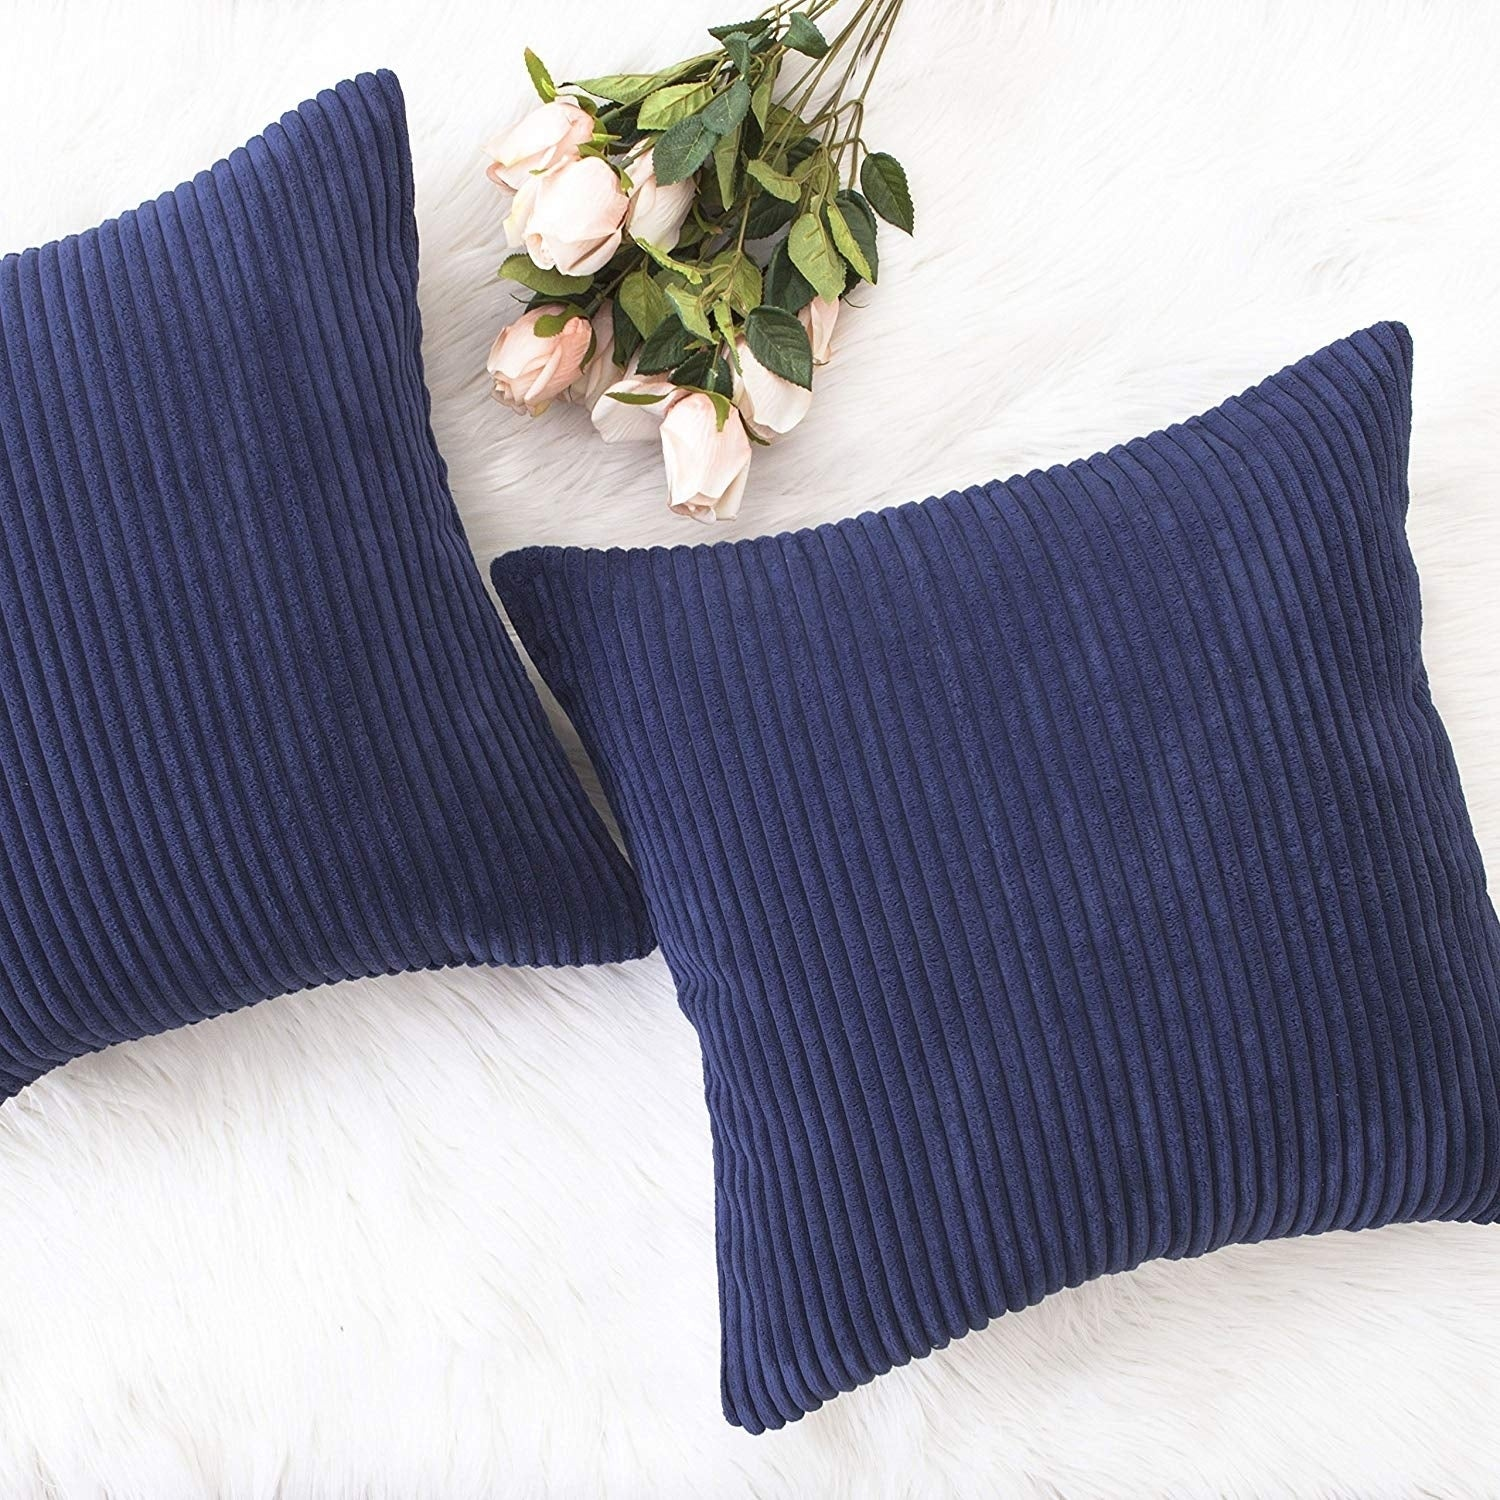 Decorative Pillow Covers Pillowcase Cushion Cover For Chair Navy Blue Overstock 22822126